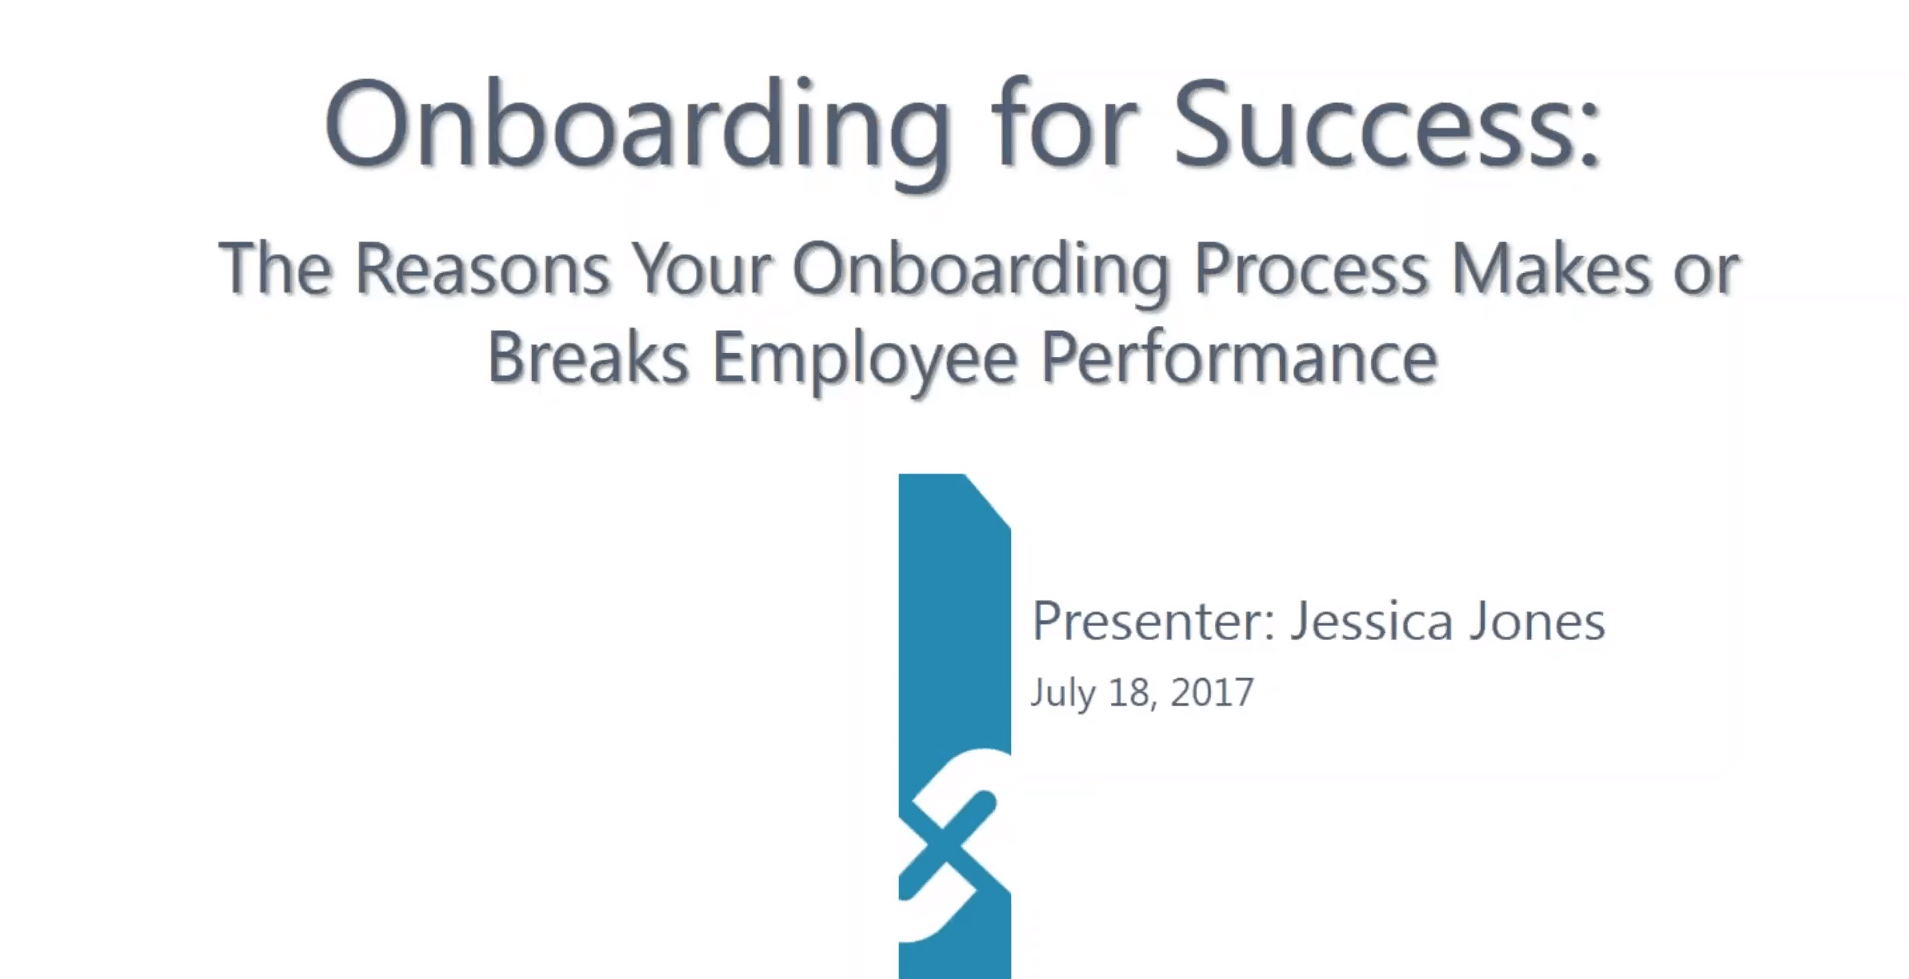 The Reasons Your Onboarding Process Makes or Breaks Employee Performance